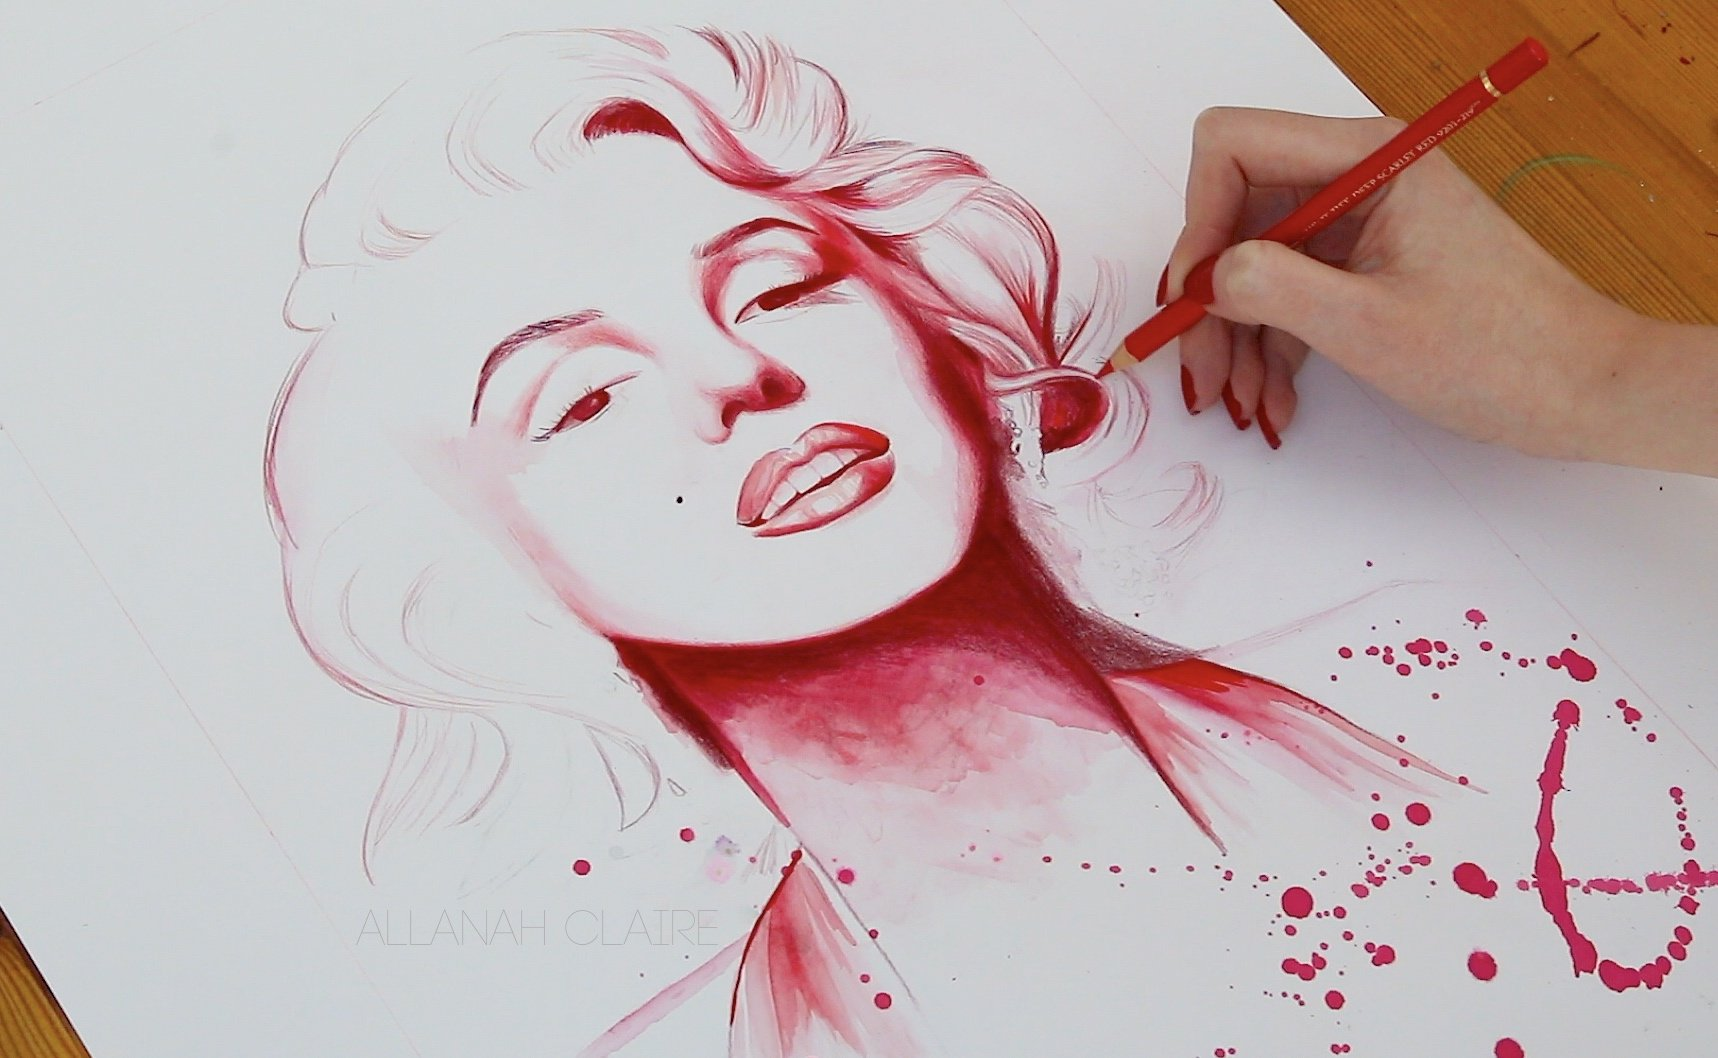 Marilyn in Red, work in progress.